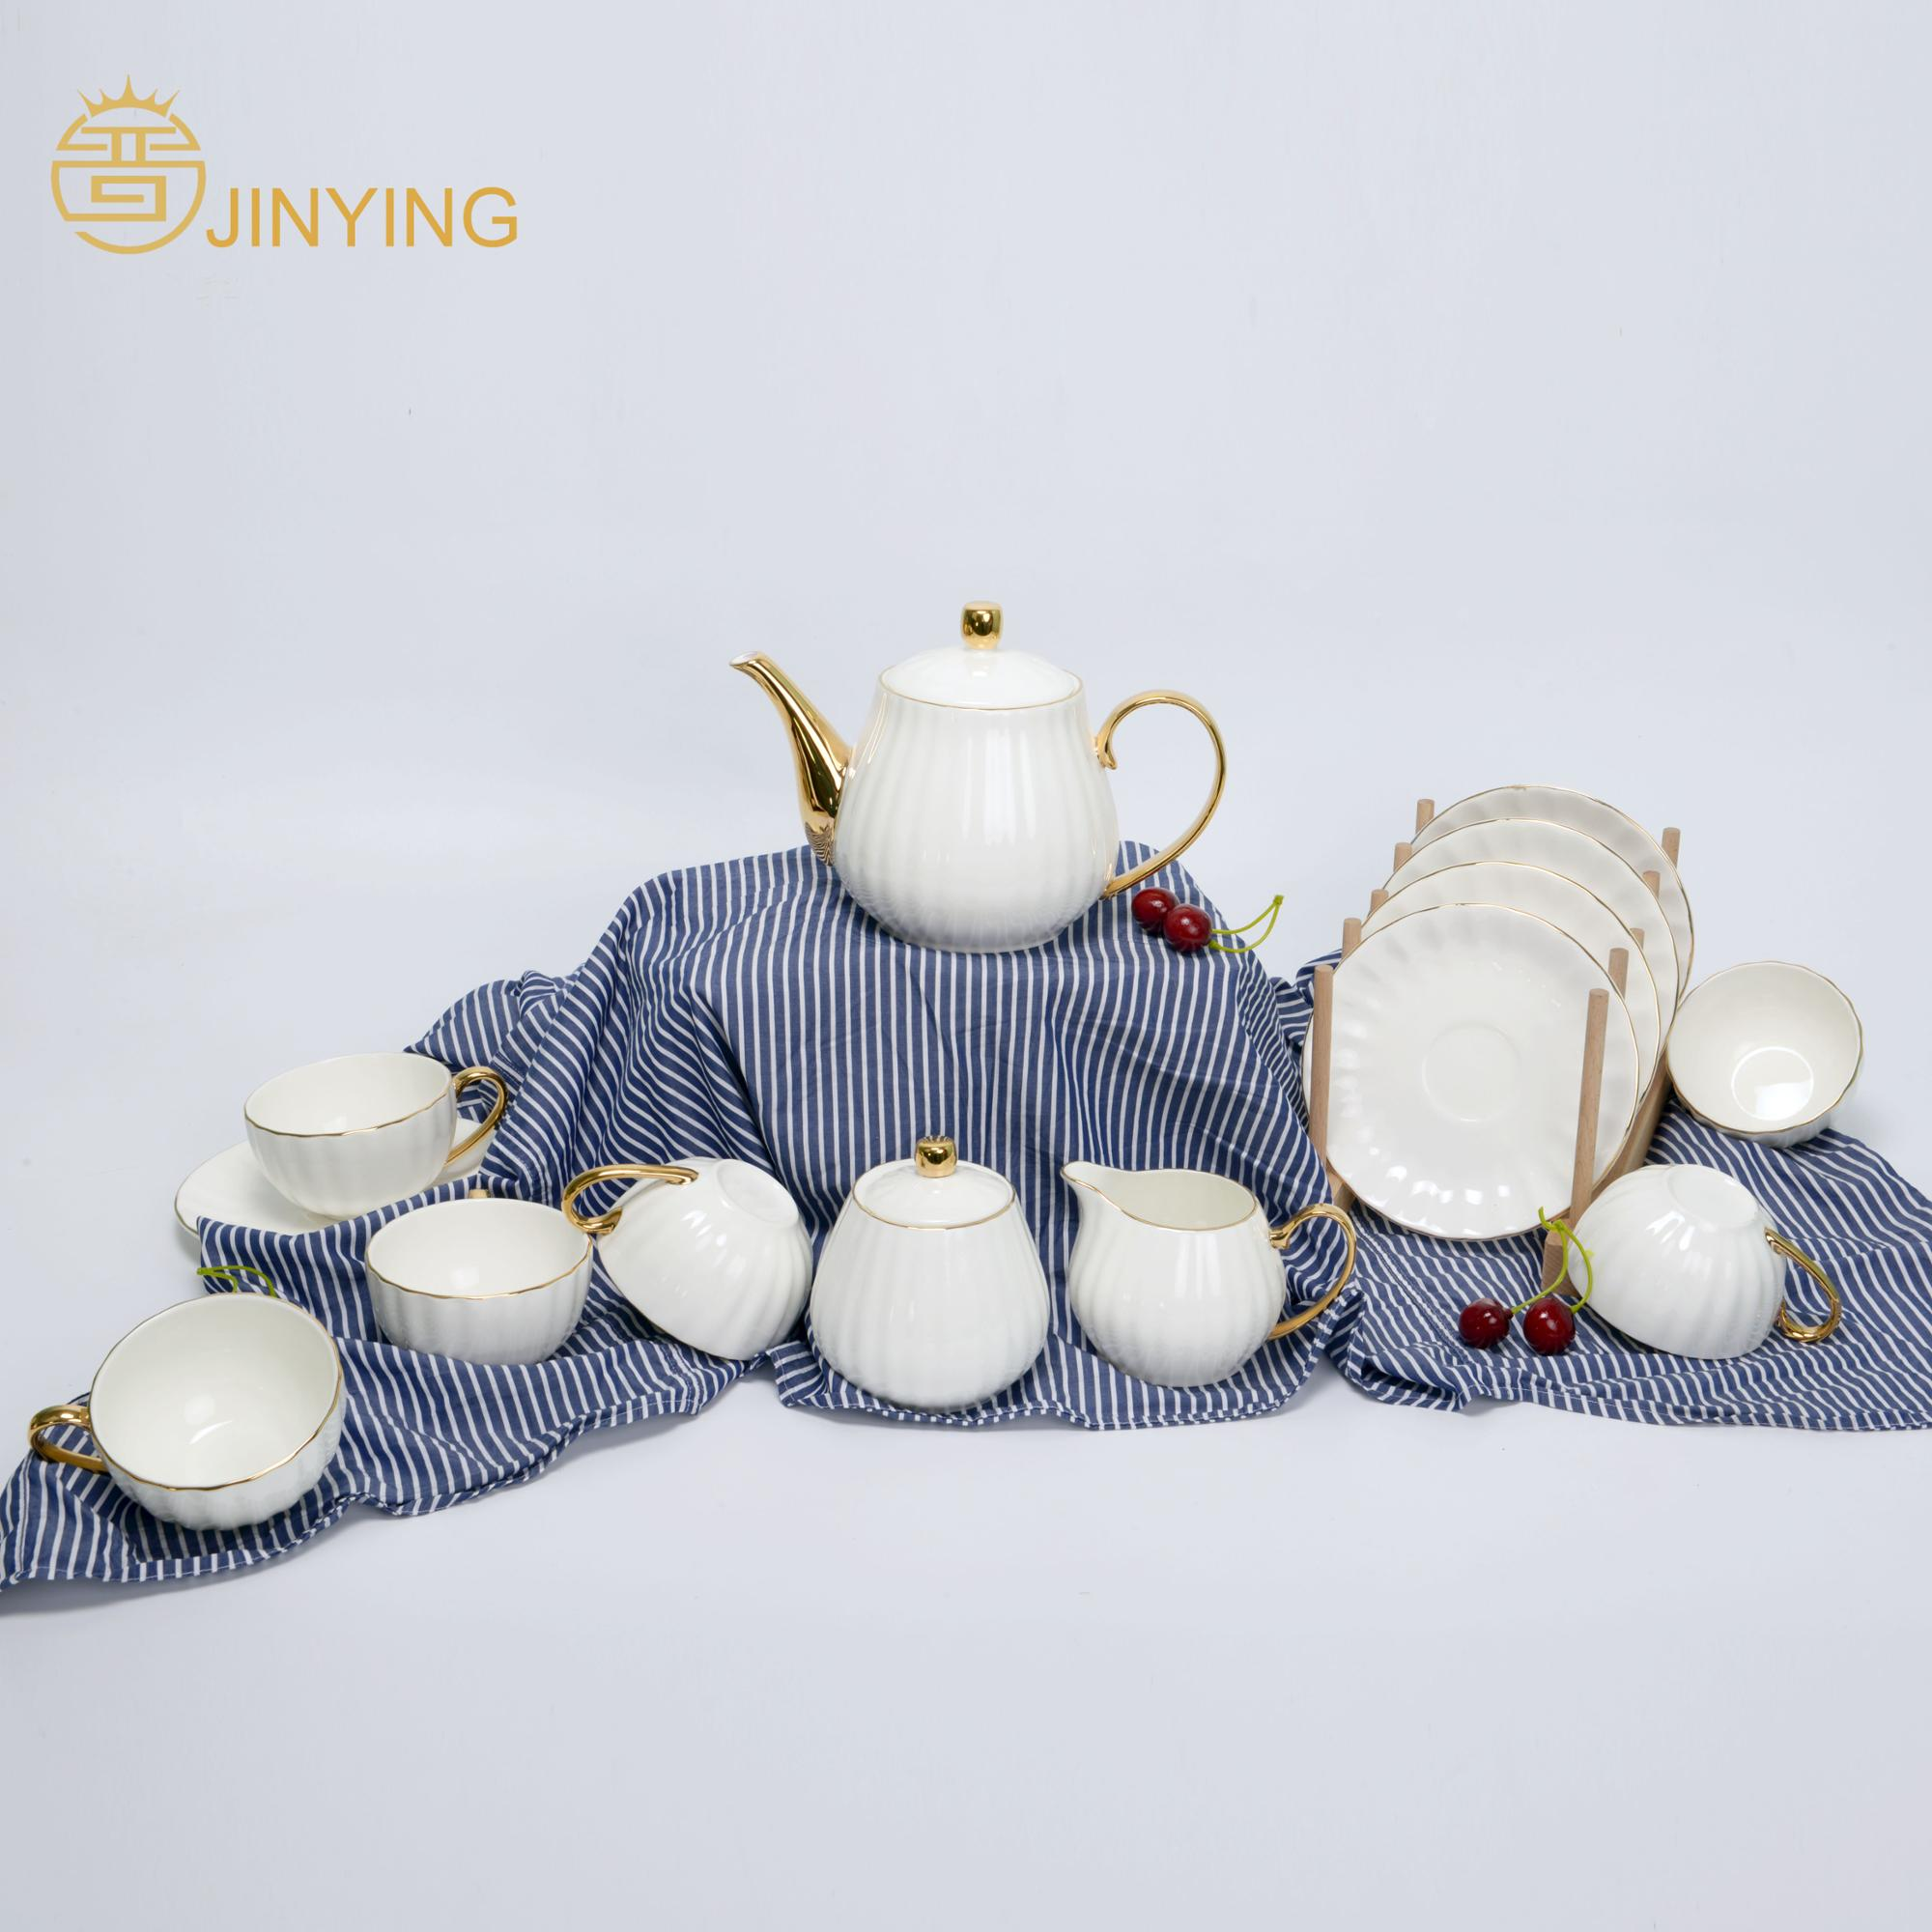 High quality new design European style 15 pcs luxury gold <strong>coffee</strong> & tea set for restaurant & home & wedding